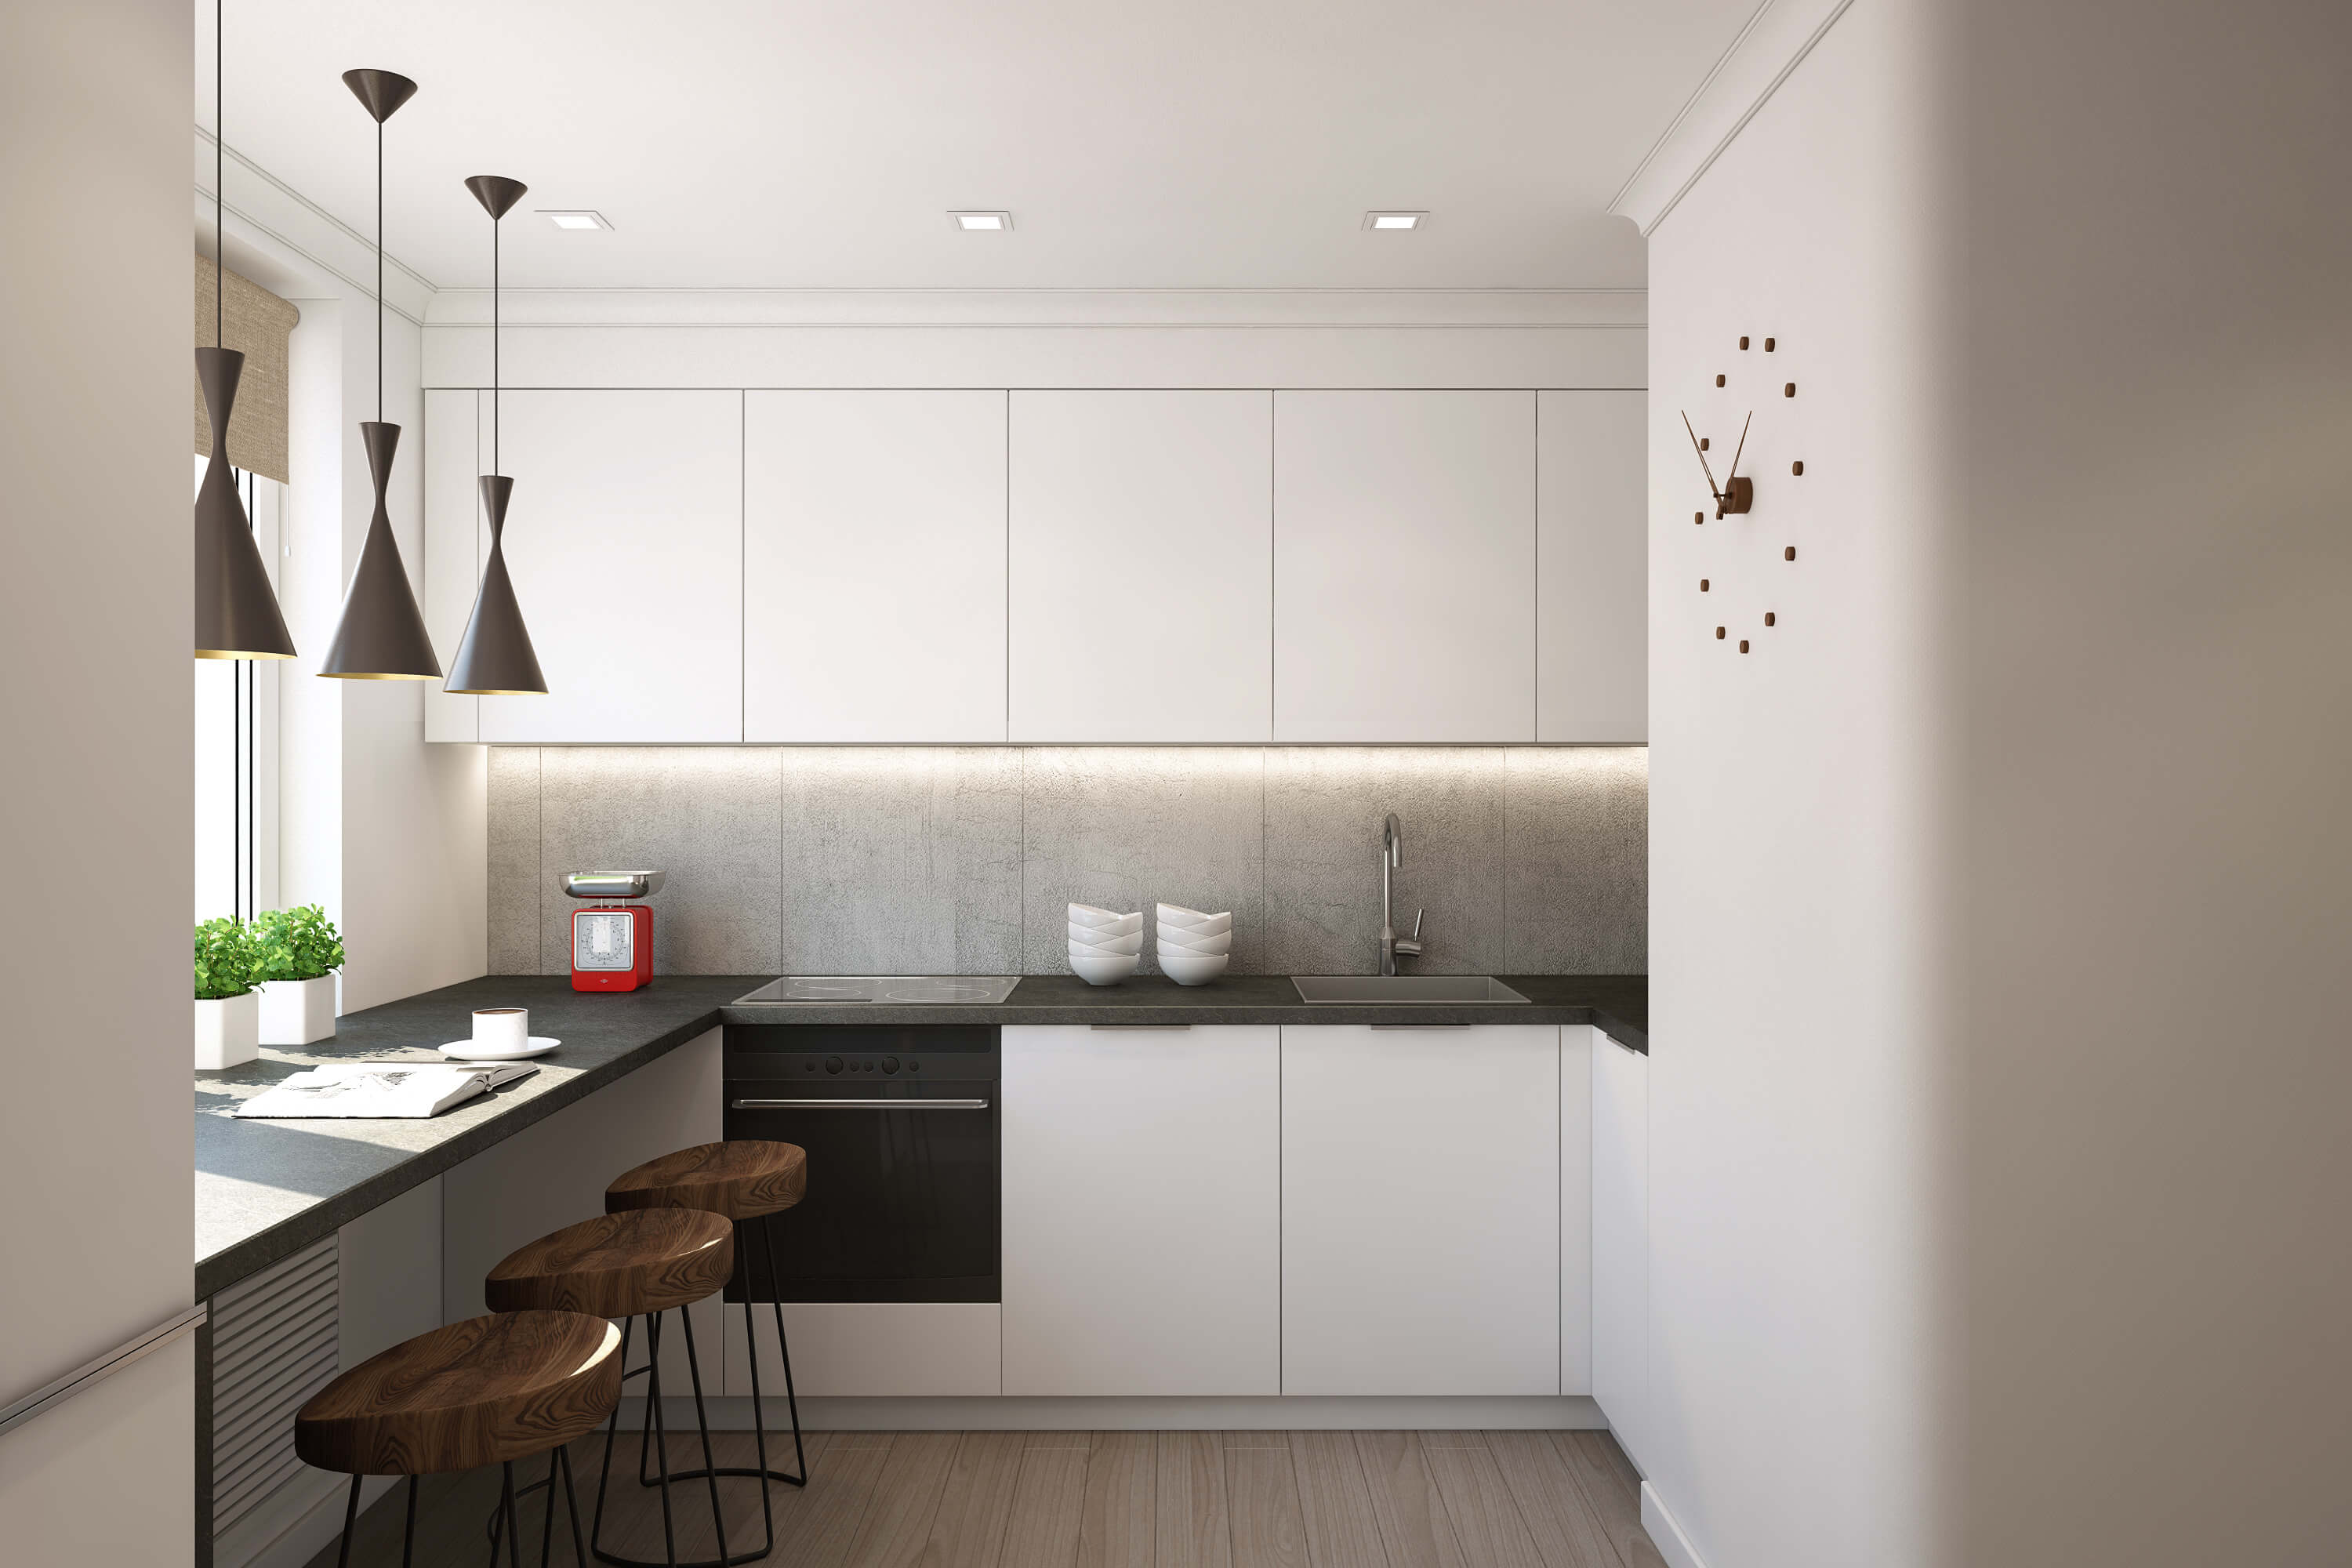 kapicy_viza_kitchen1